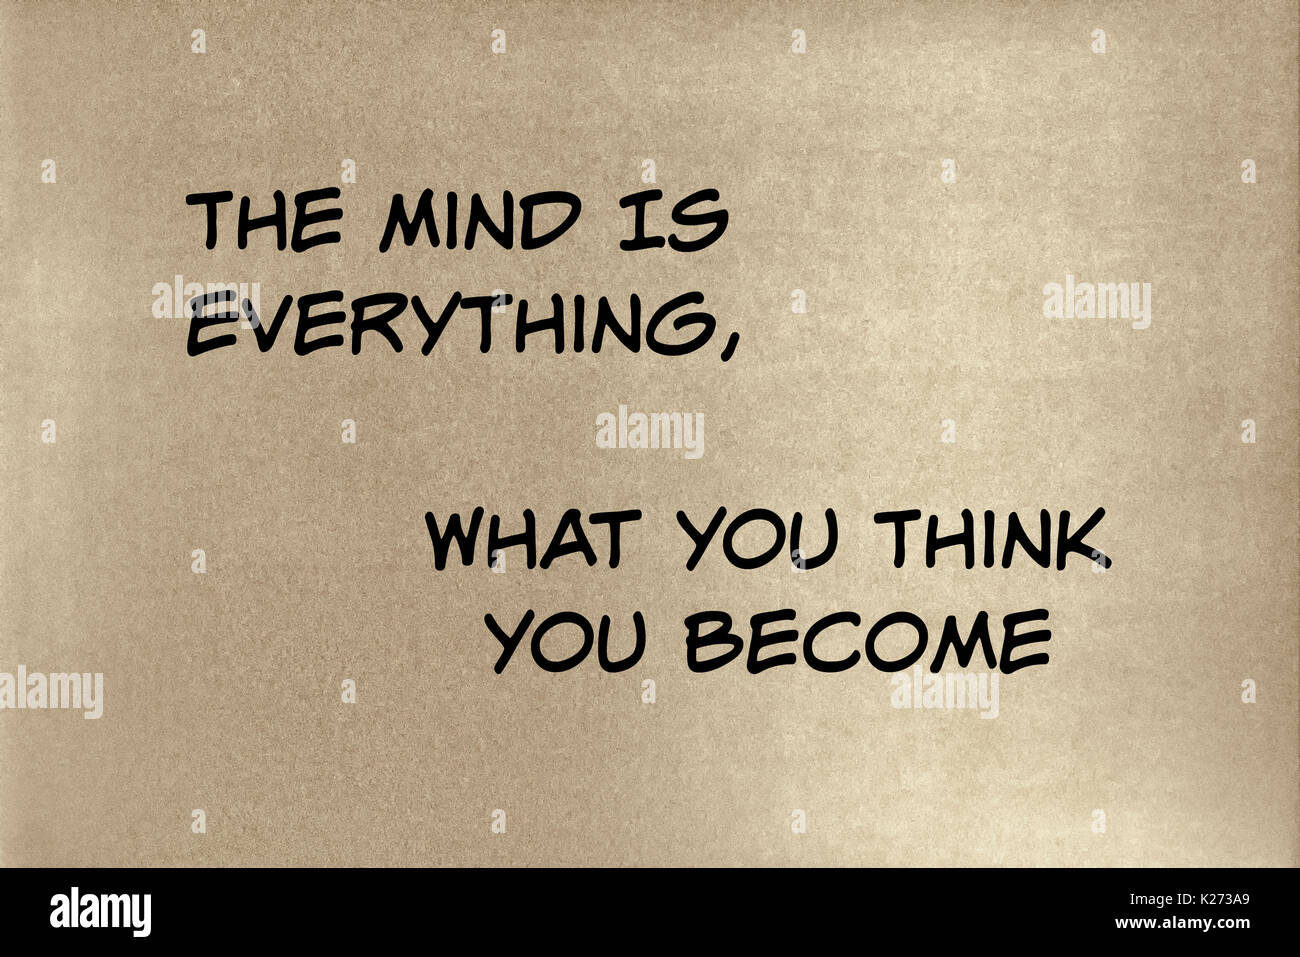 A phrase by Budda: The mind is everything, what you think you become.    Graphic Design. - Stock Image